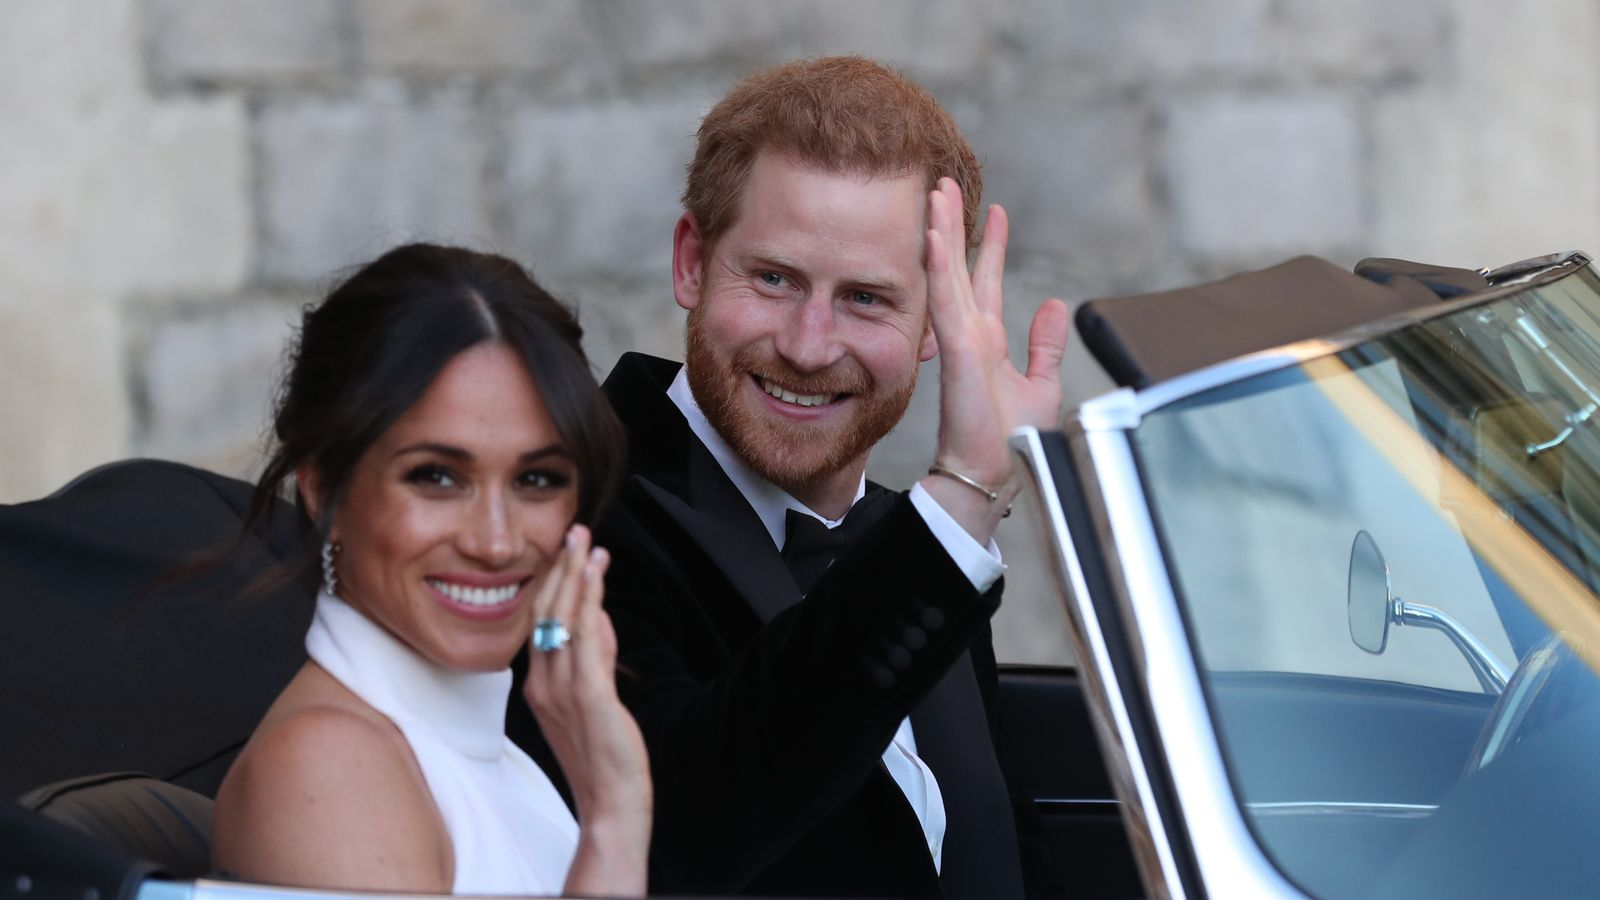 Woman's Day magazine 'blatantly incorrect' over Harry and Meghan split claim